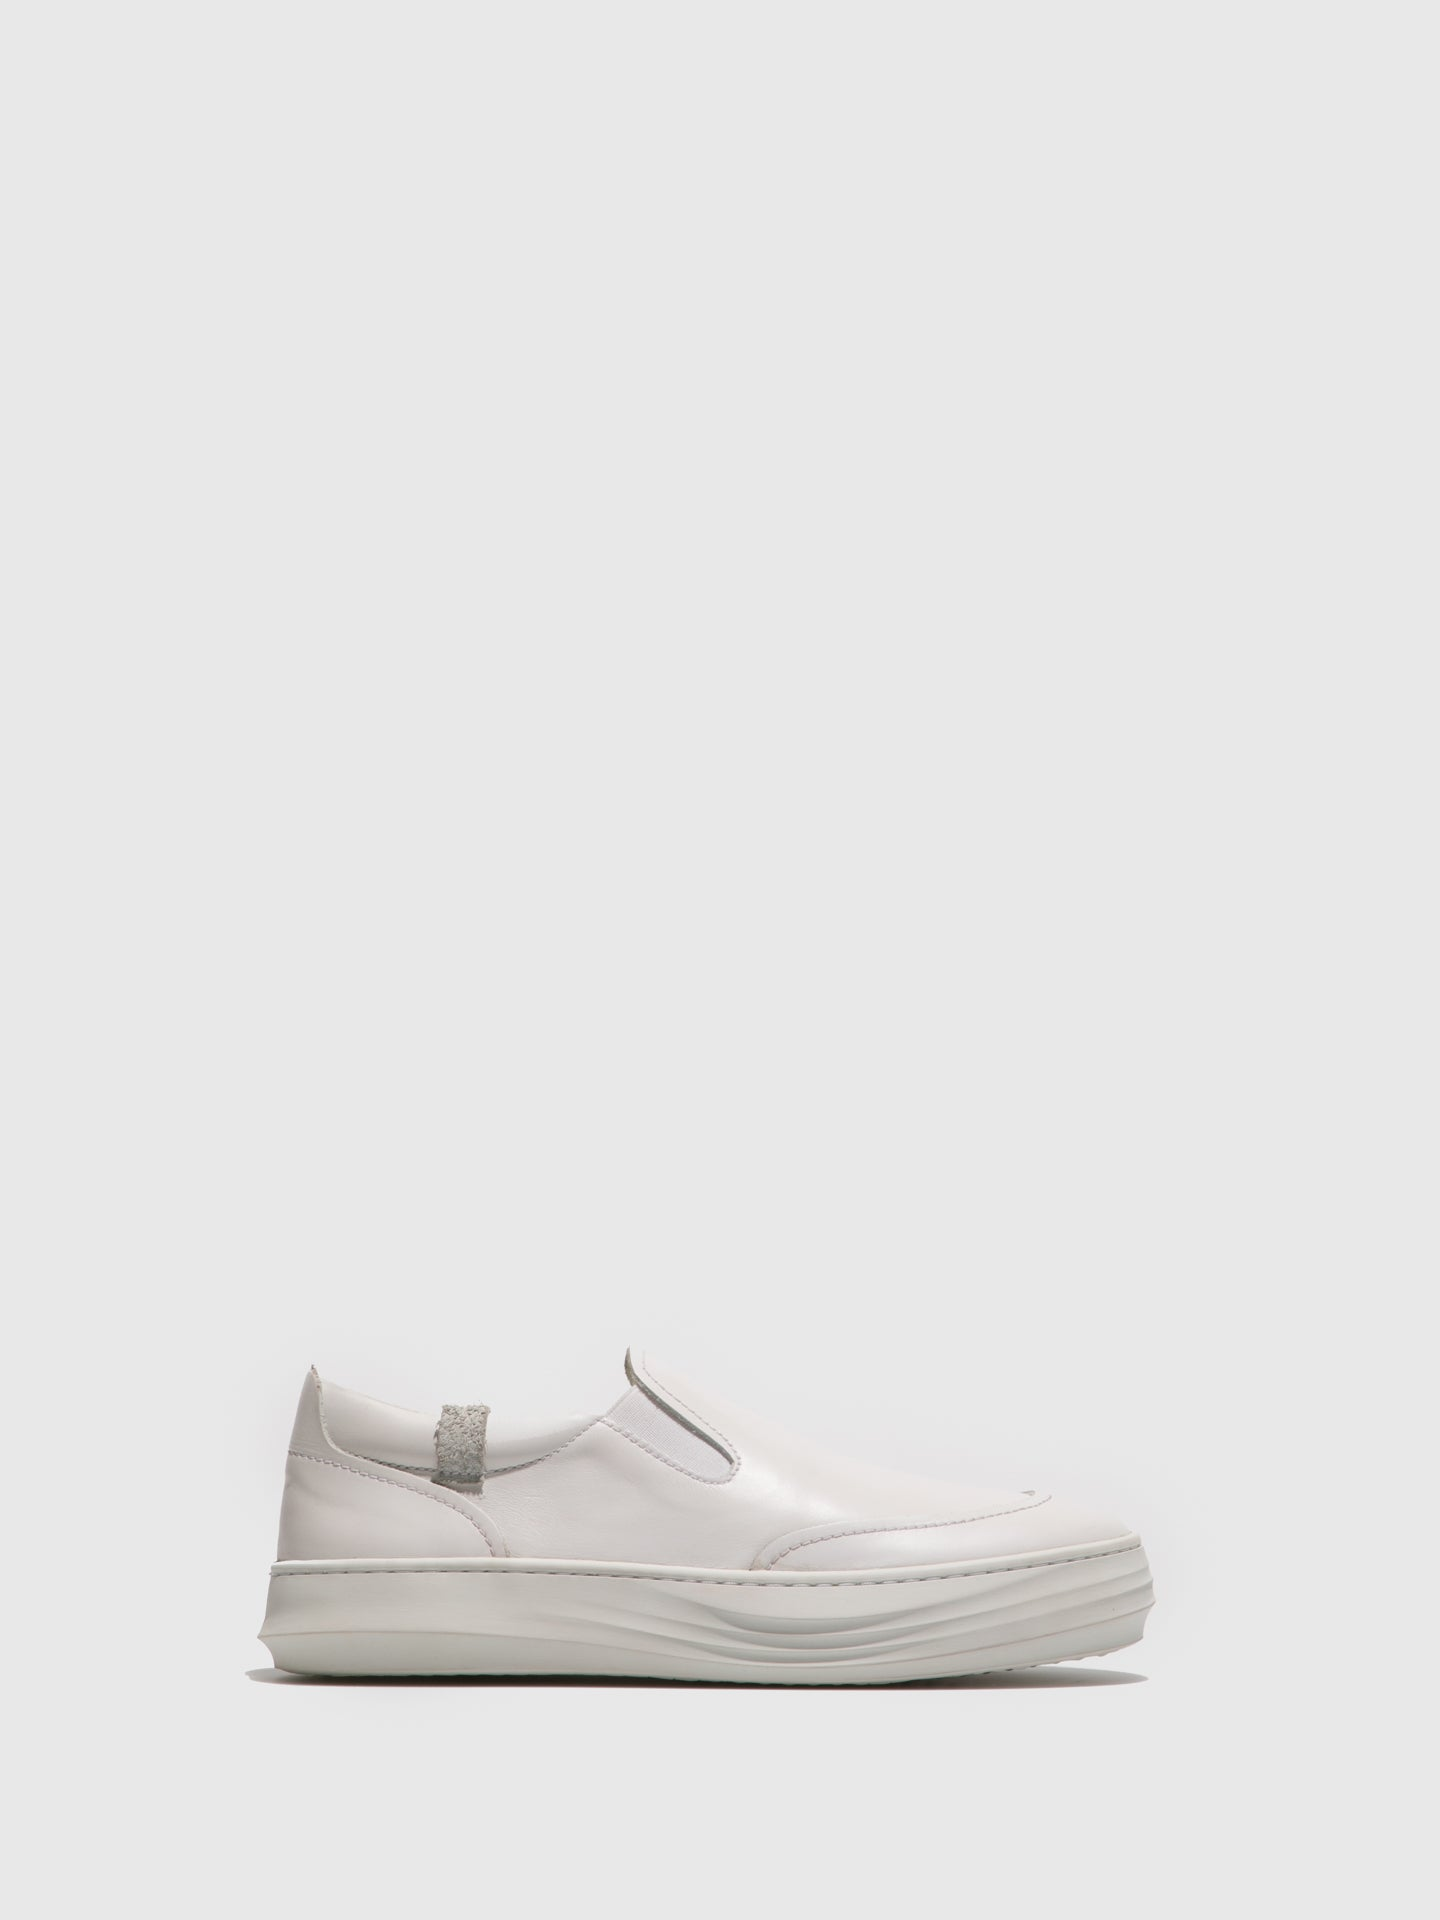 Fly London White Slip-on Shoes